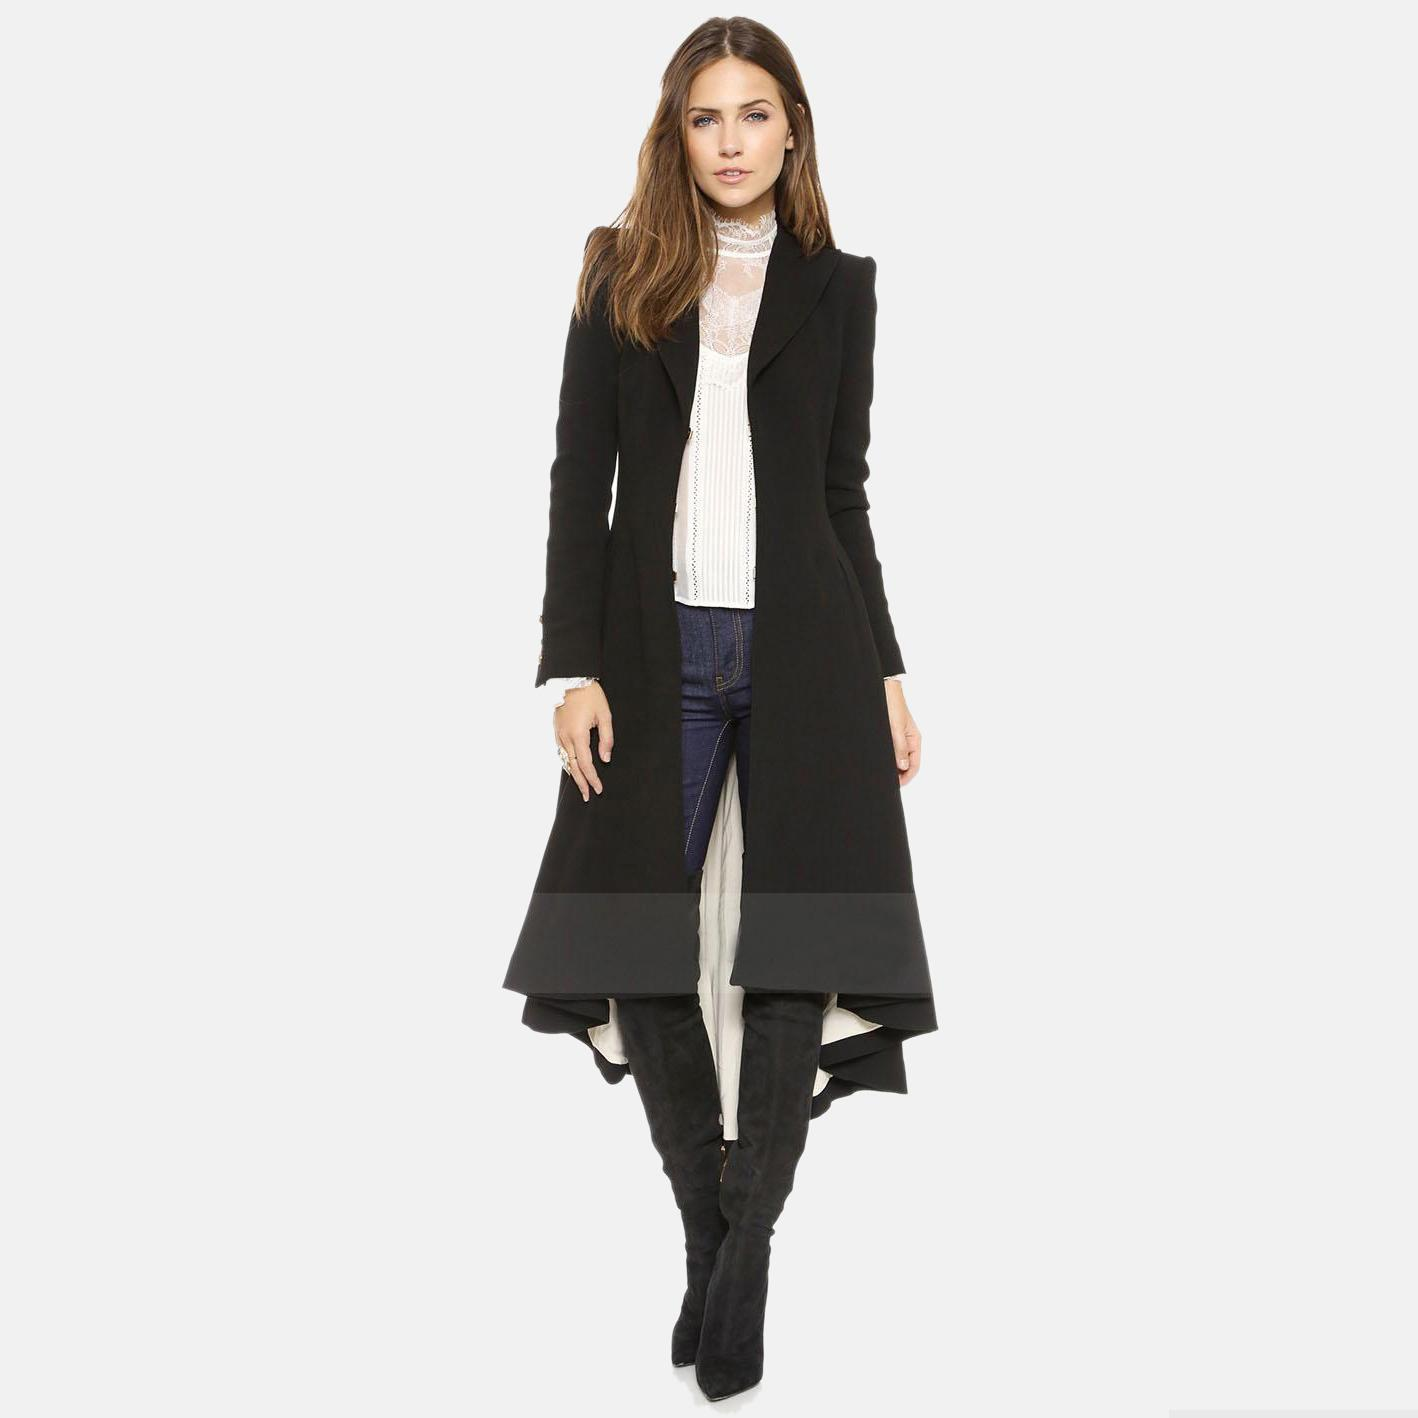 Black Spring Style Trench Coats For Women Fashion Outwear